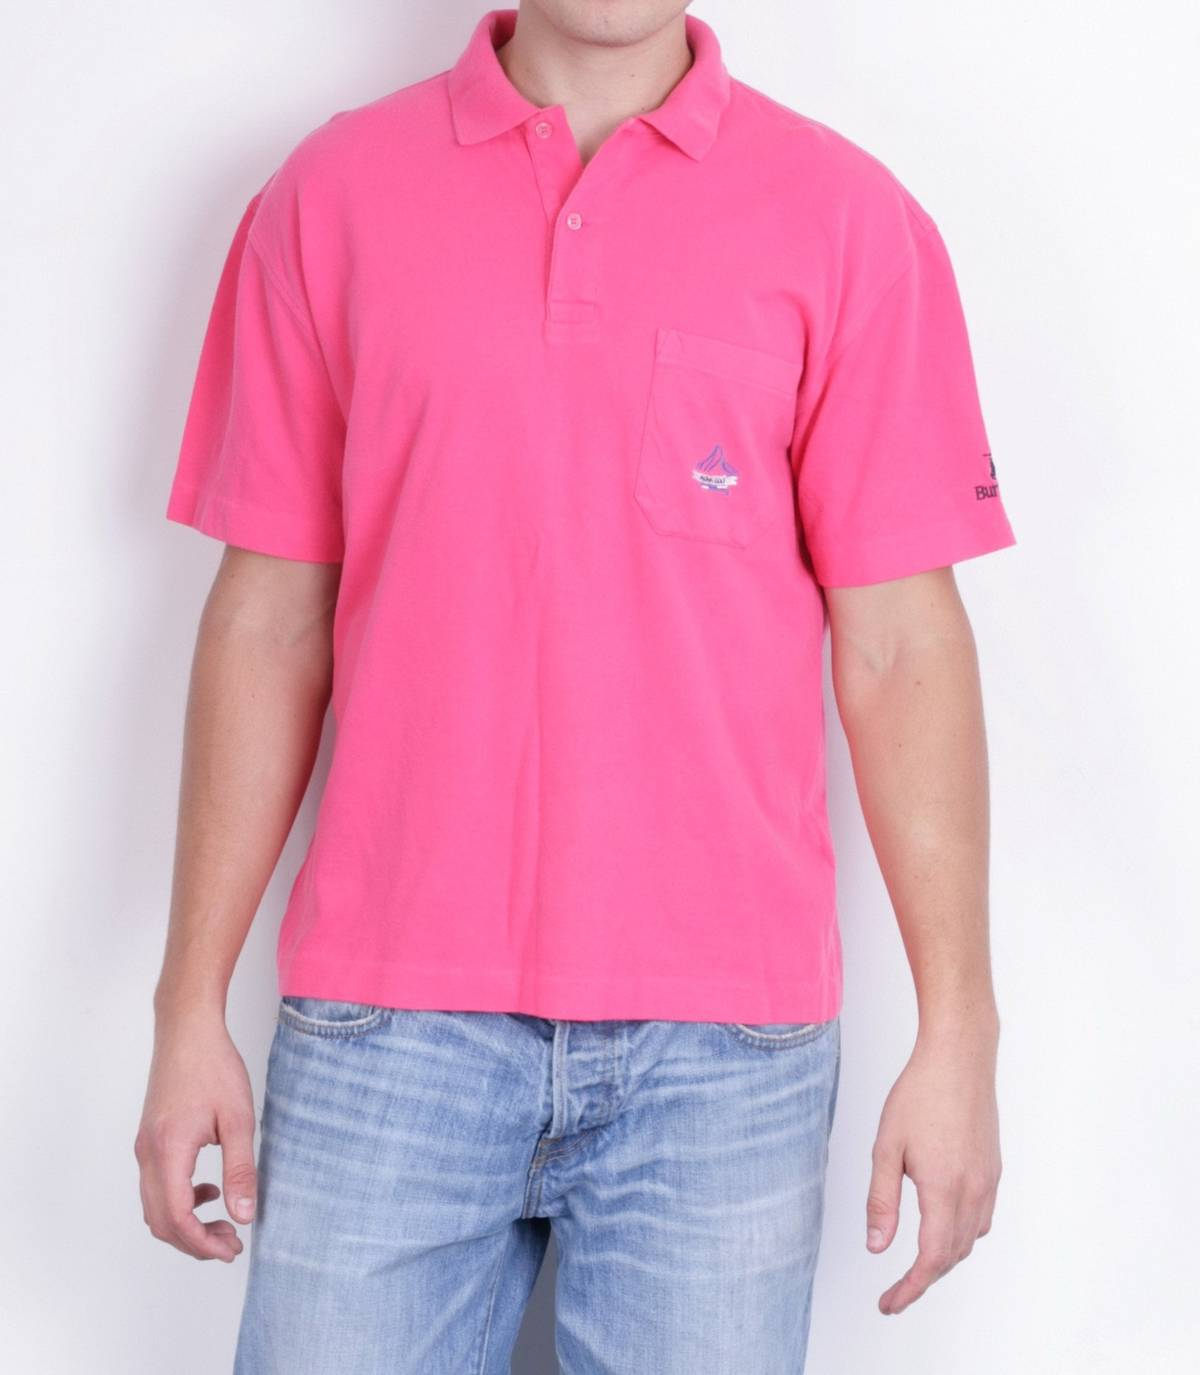 Burberry Burberrys Mens 6 Xl Polo Shirt Pink Aloha Golf Short Sleeve